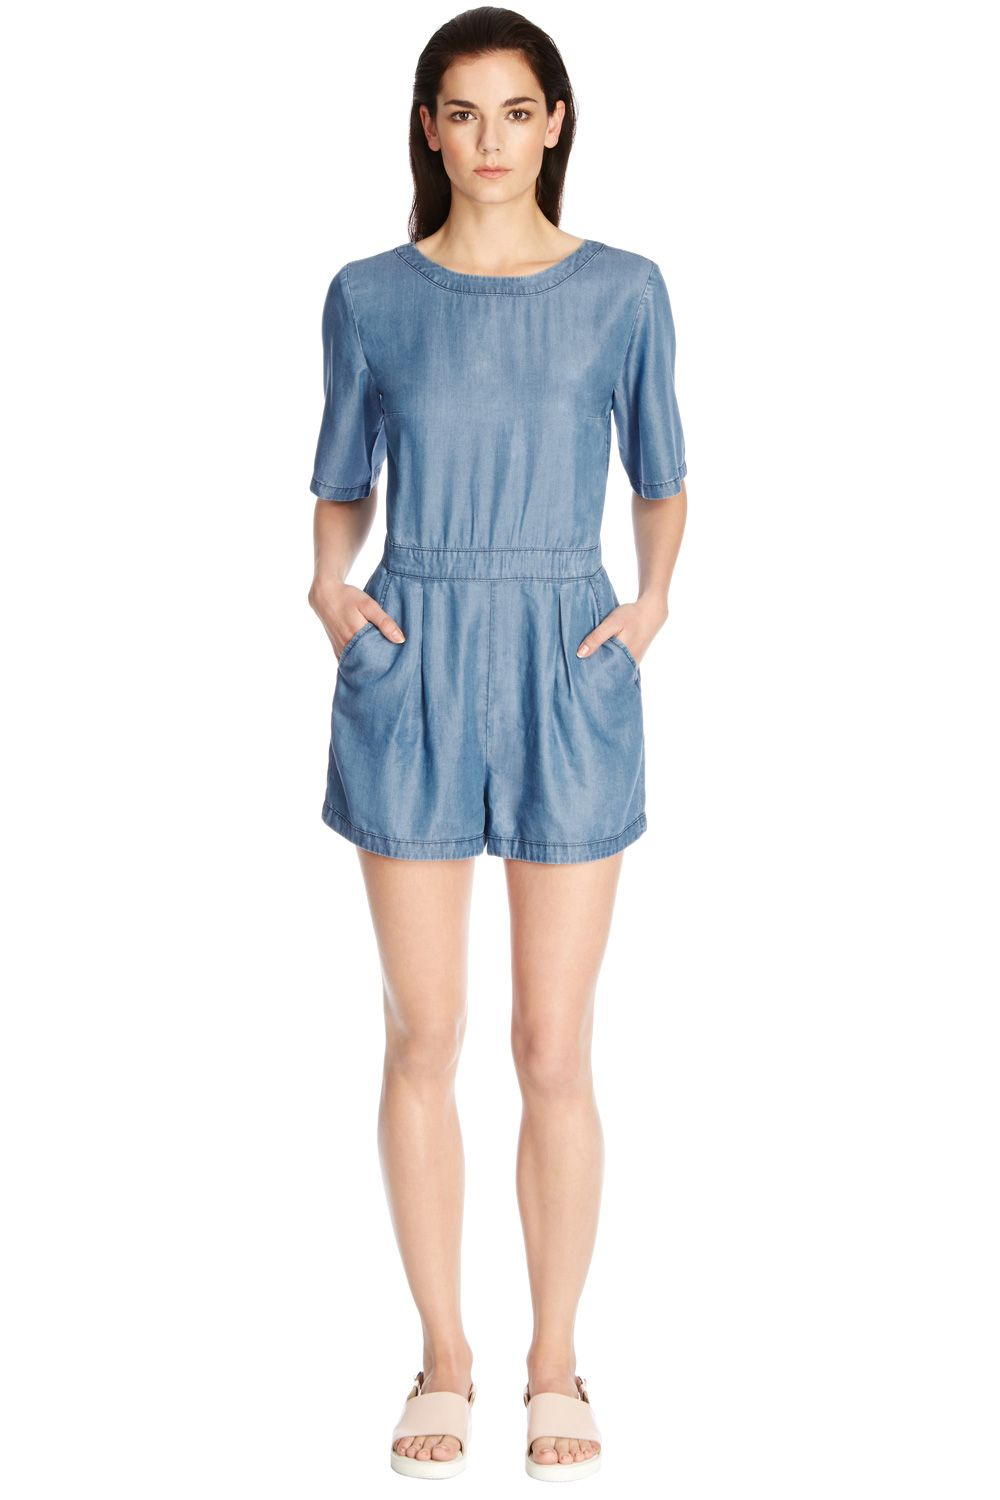 T-shirt playsuit